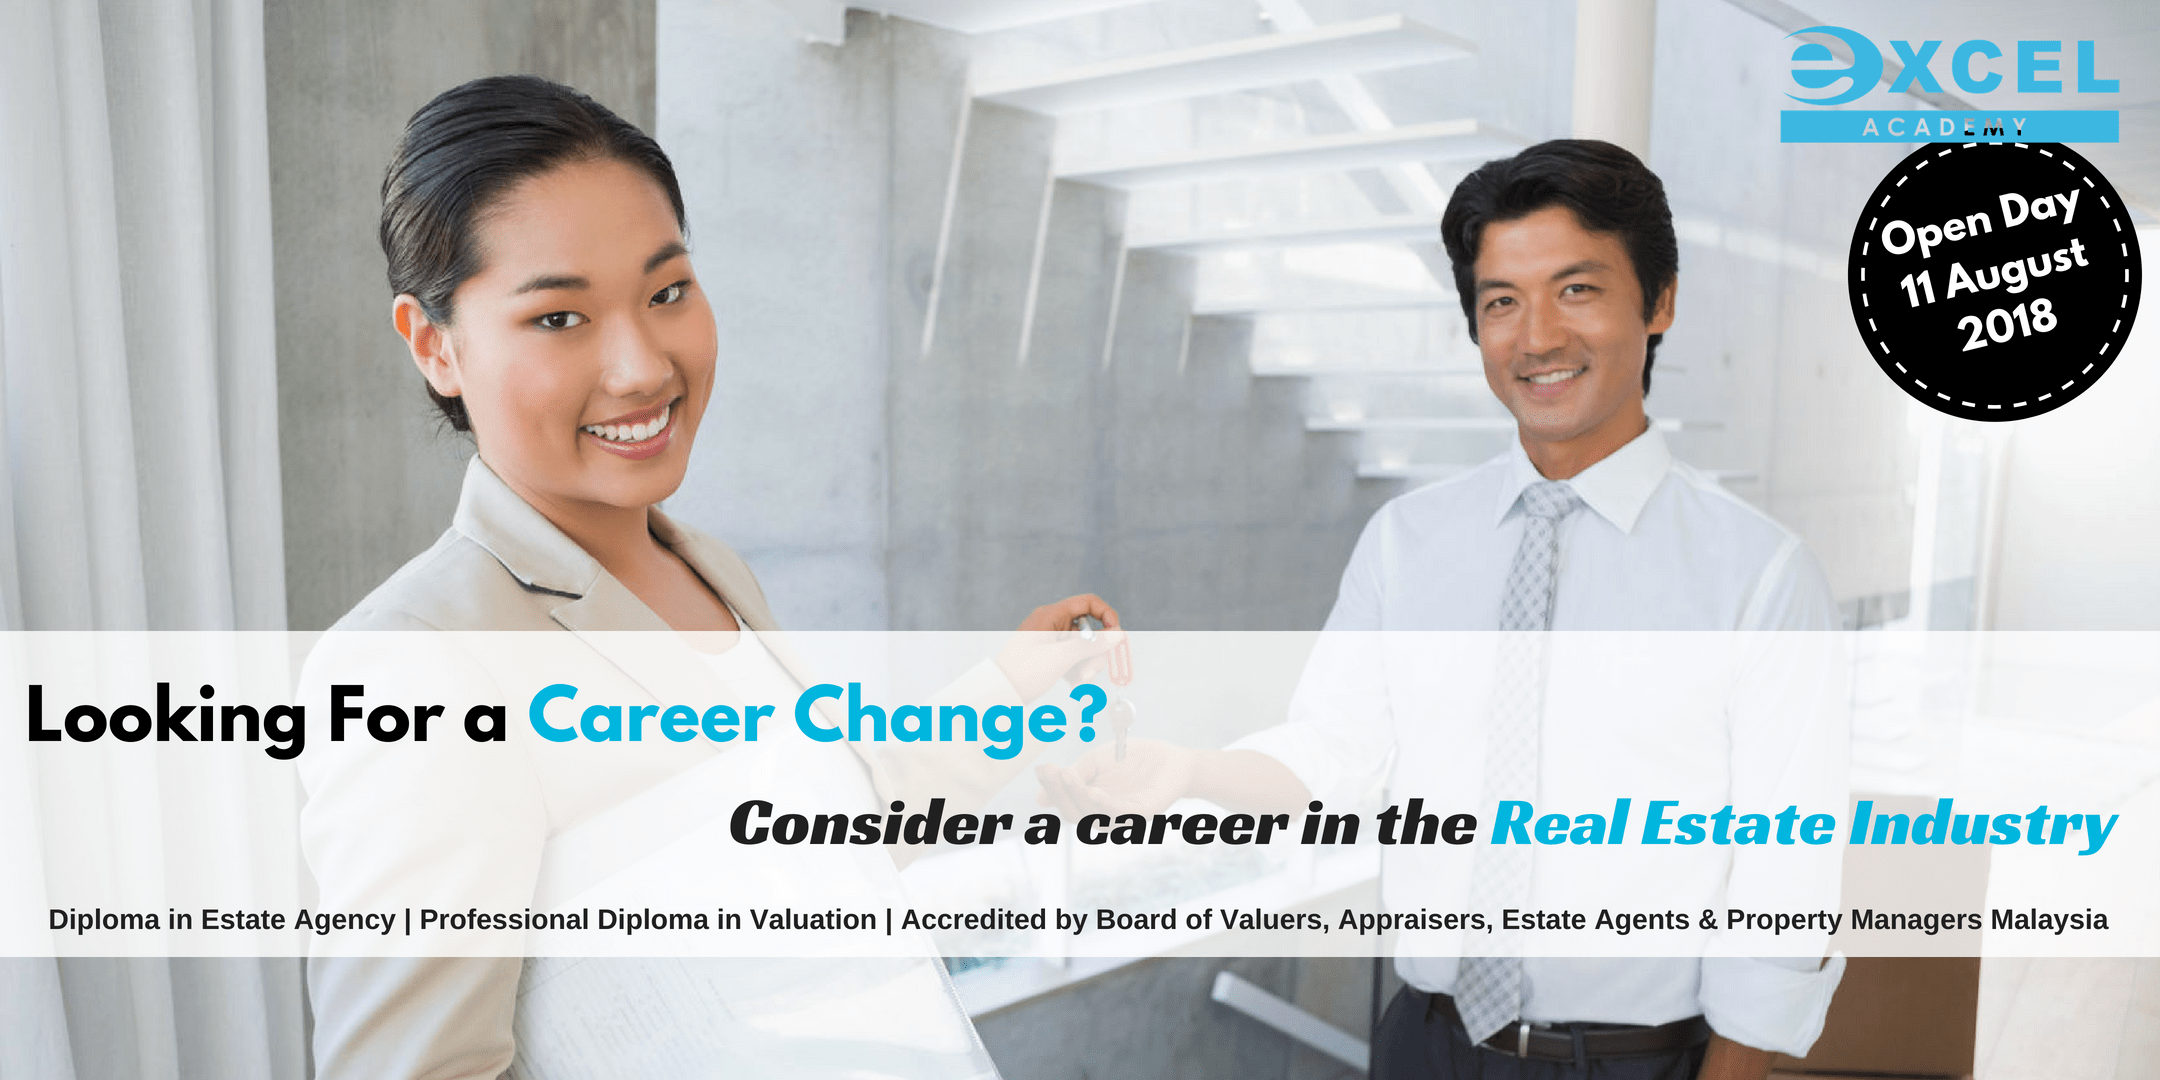 Broker Careers